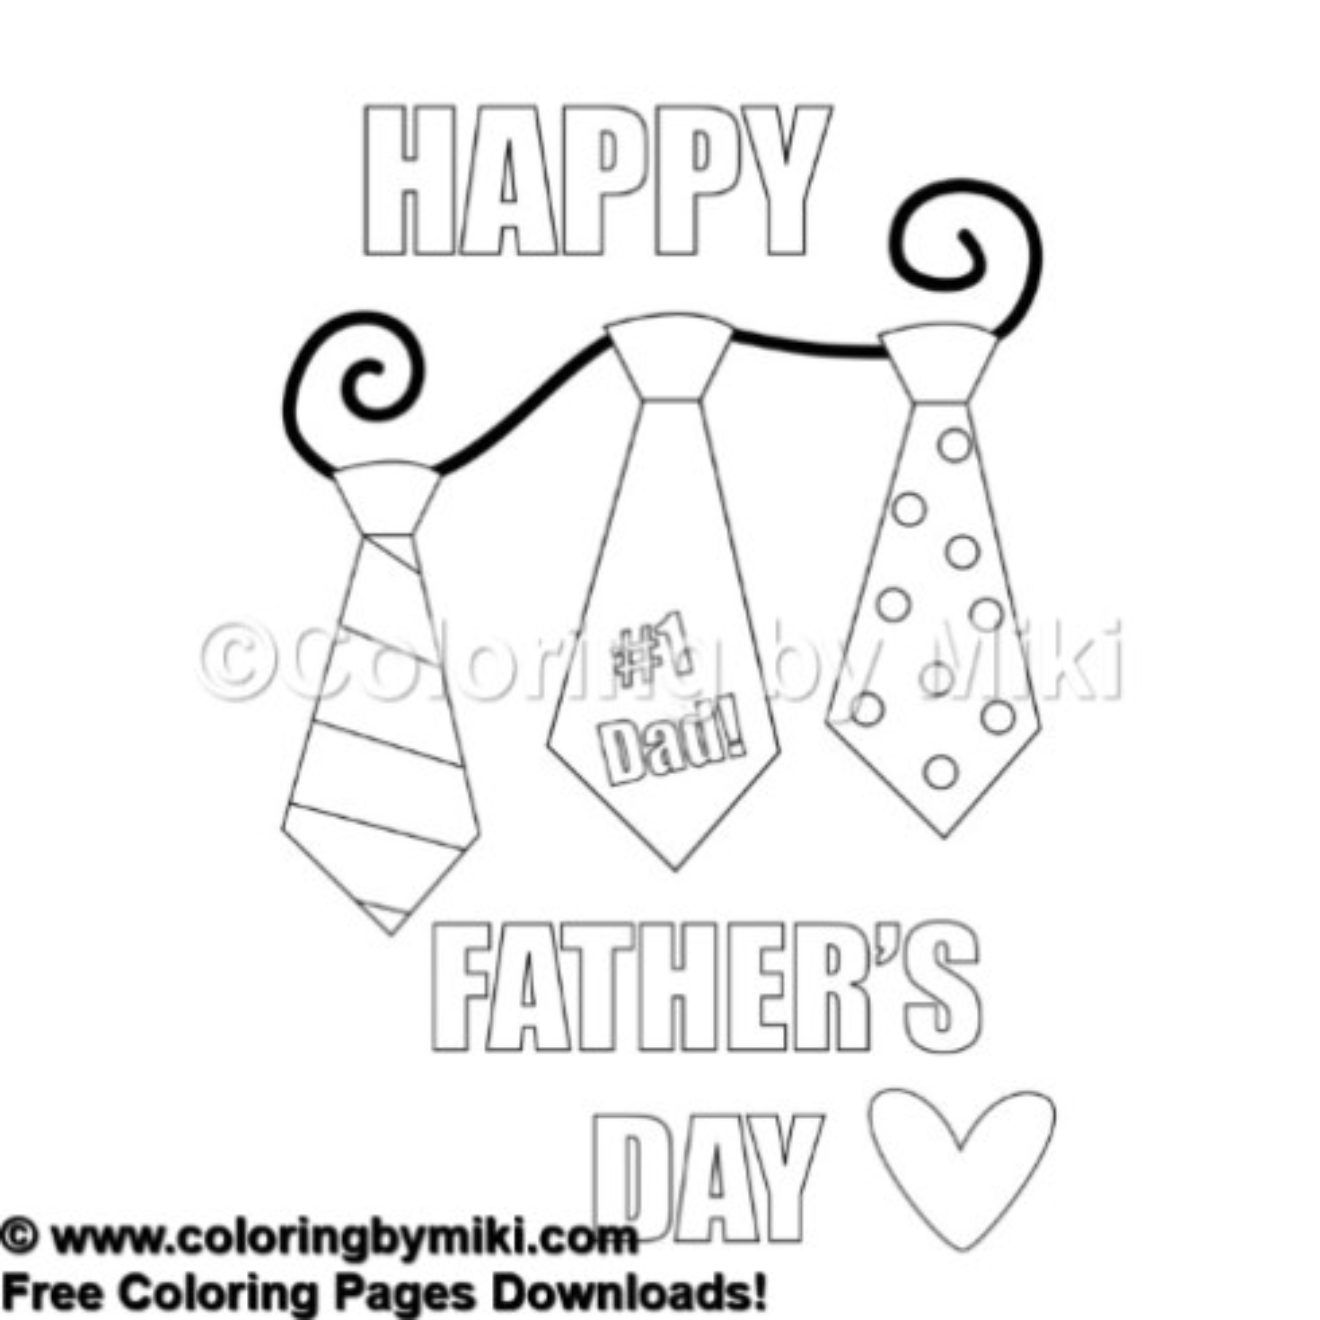 Happy Father\'s Day #1 Dad Coloring Page #646 | Free printable and ...